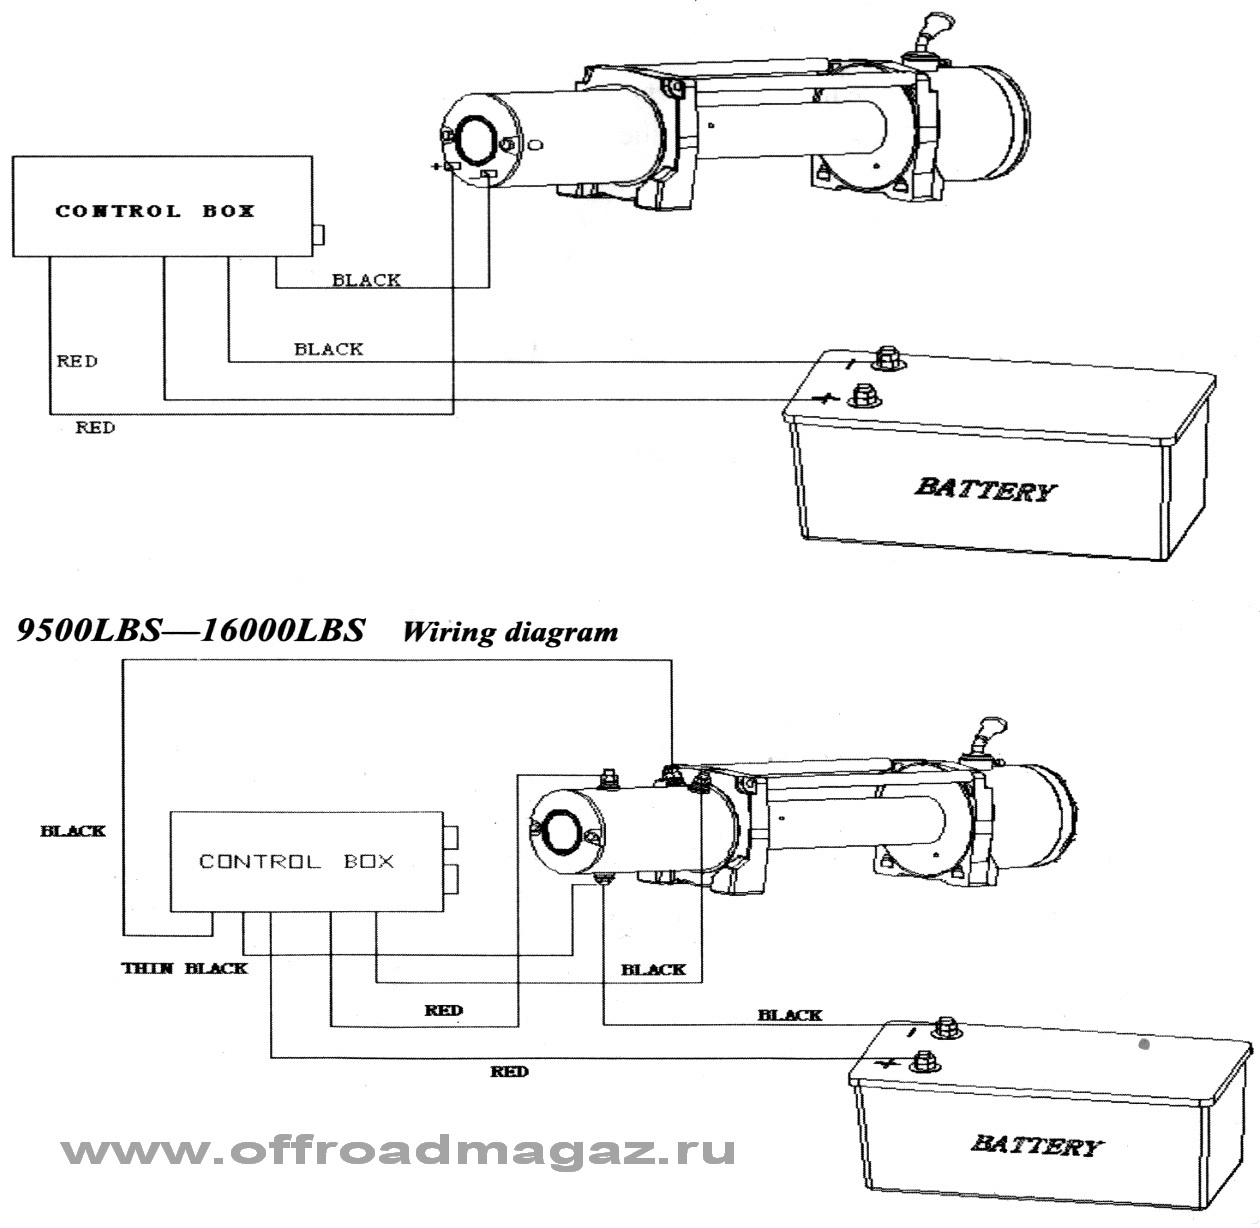 hight resolution of 12v electric winch wiring diagram wiring diagram third level 230 volt electrical wiring diagram 12 volt wiring diagram for winch